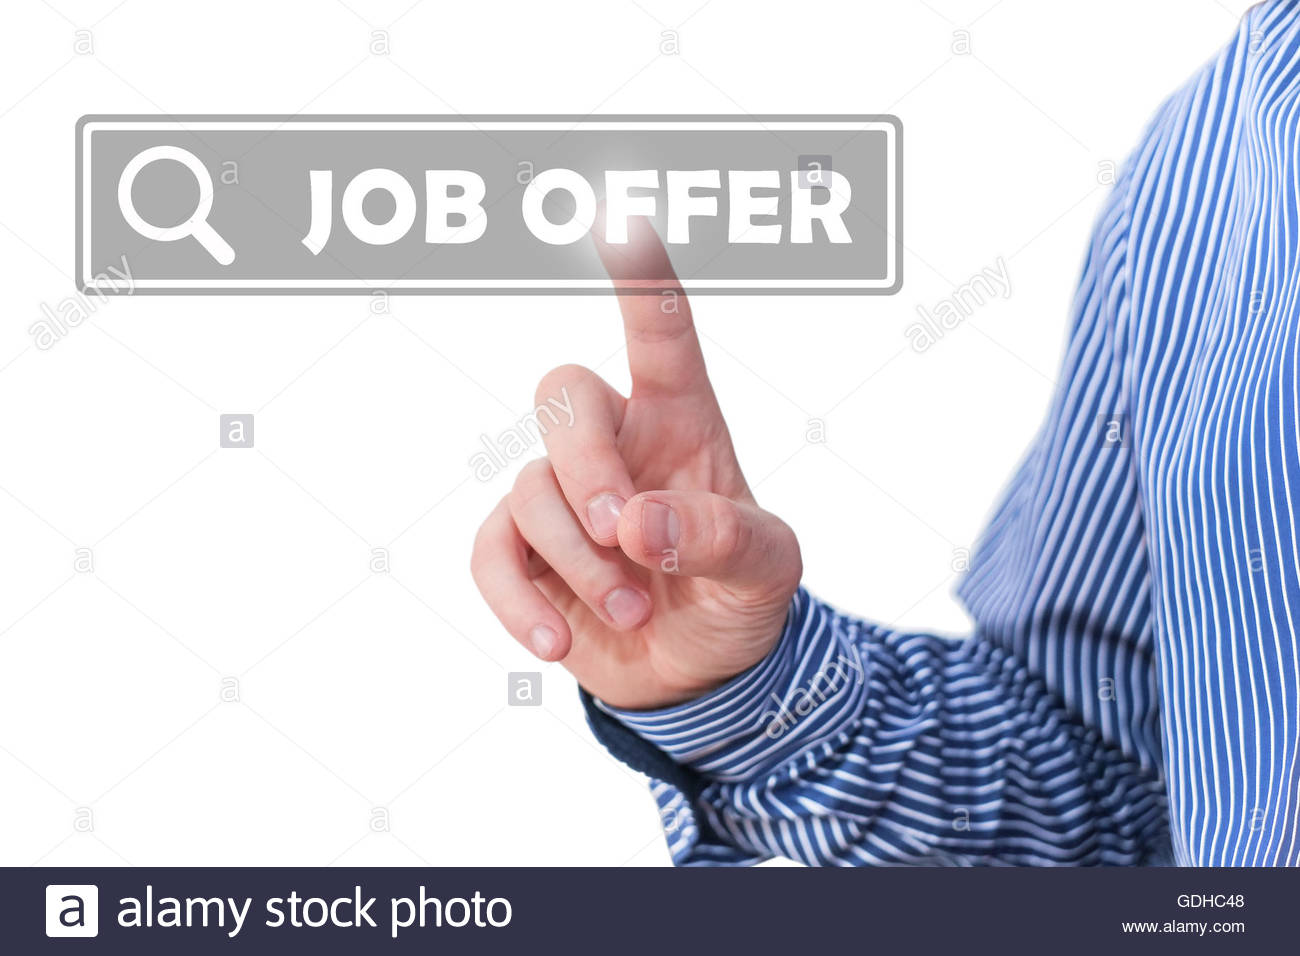 Job offer search - Stock Image